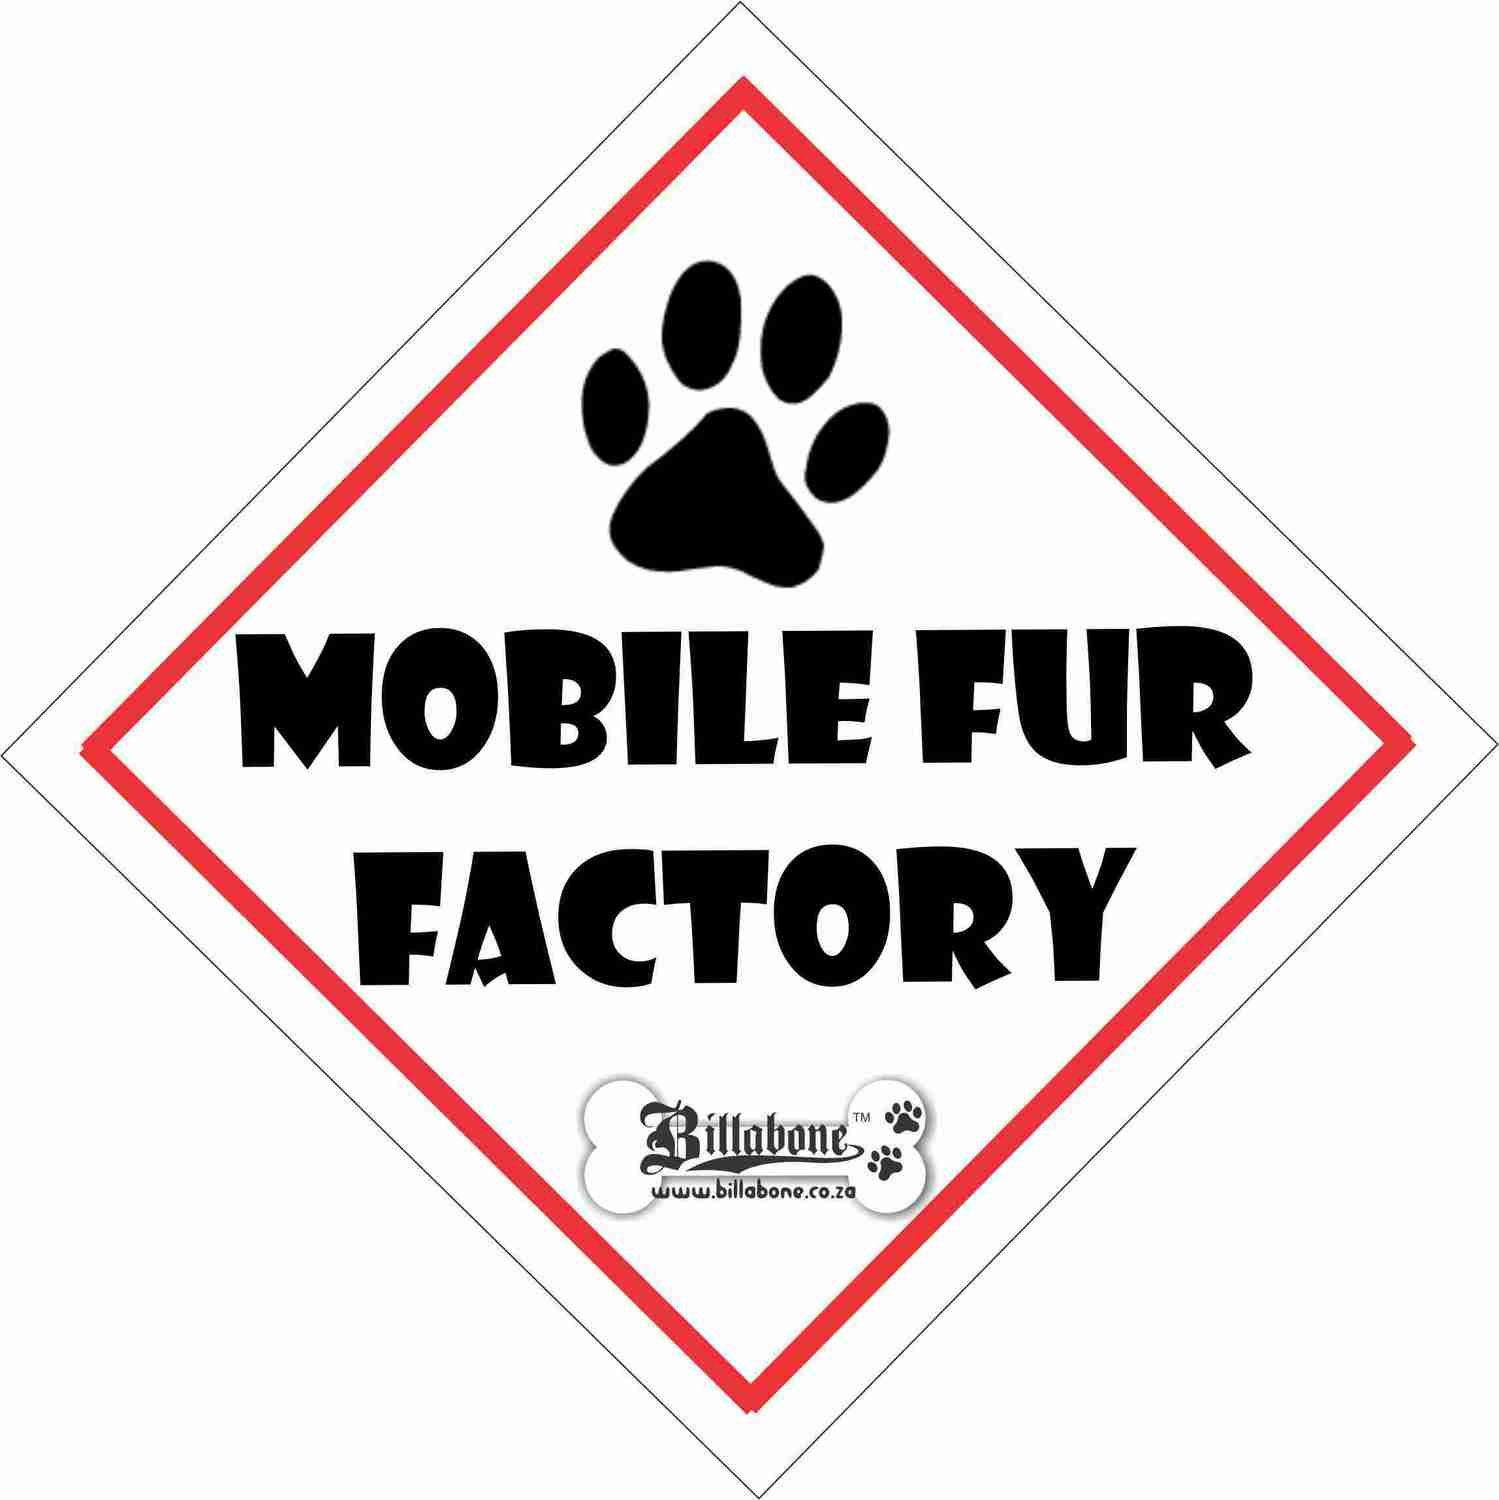 Mobile Fur Factory Car Sign or Sticker